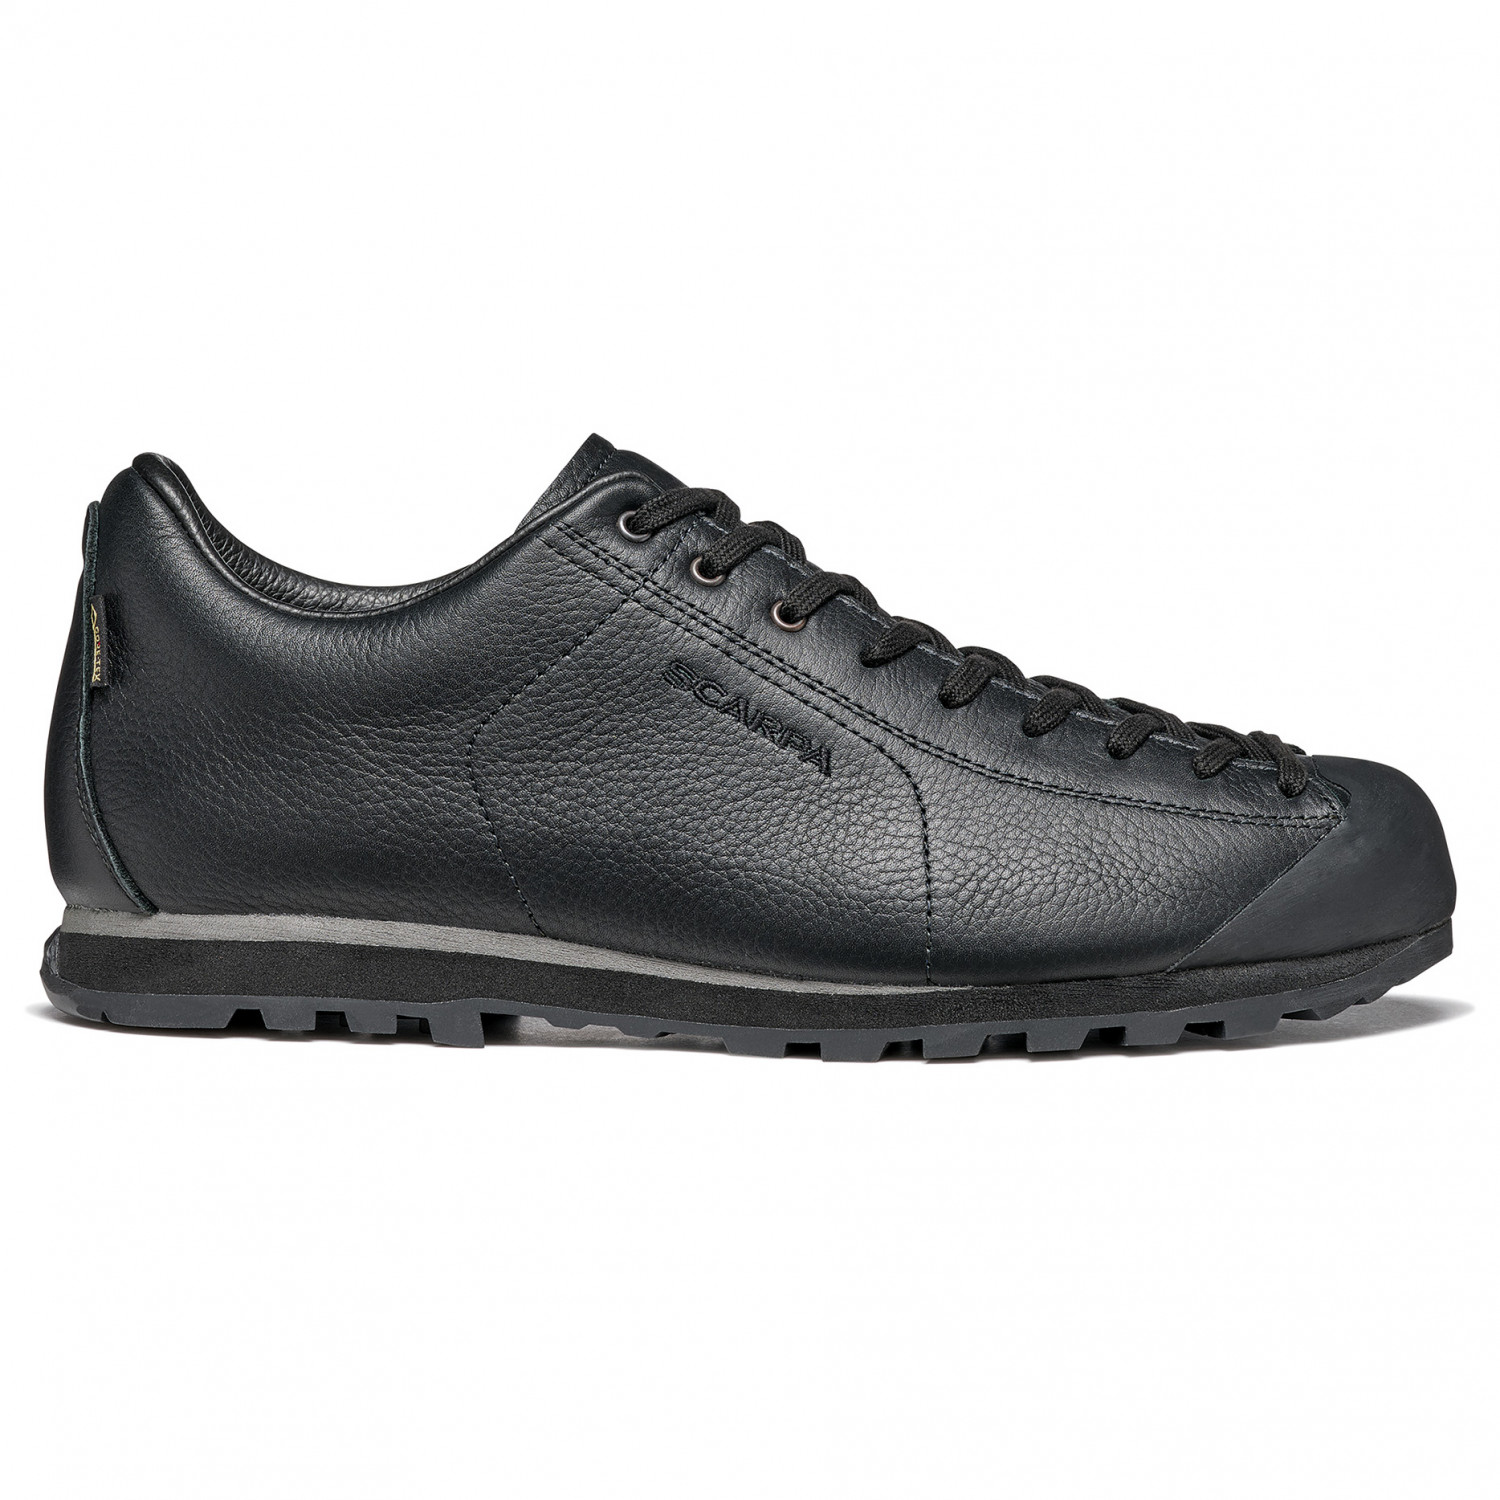 Scarpa Mojito Basic Gtx Sneakers Free Uk Delivery